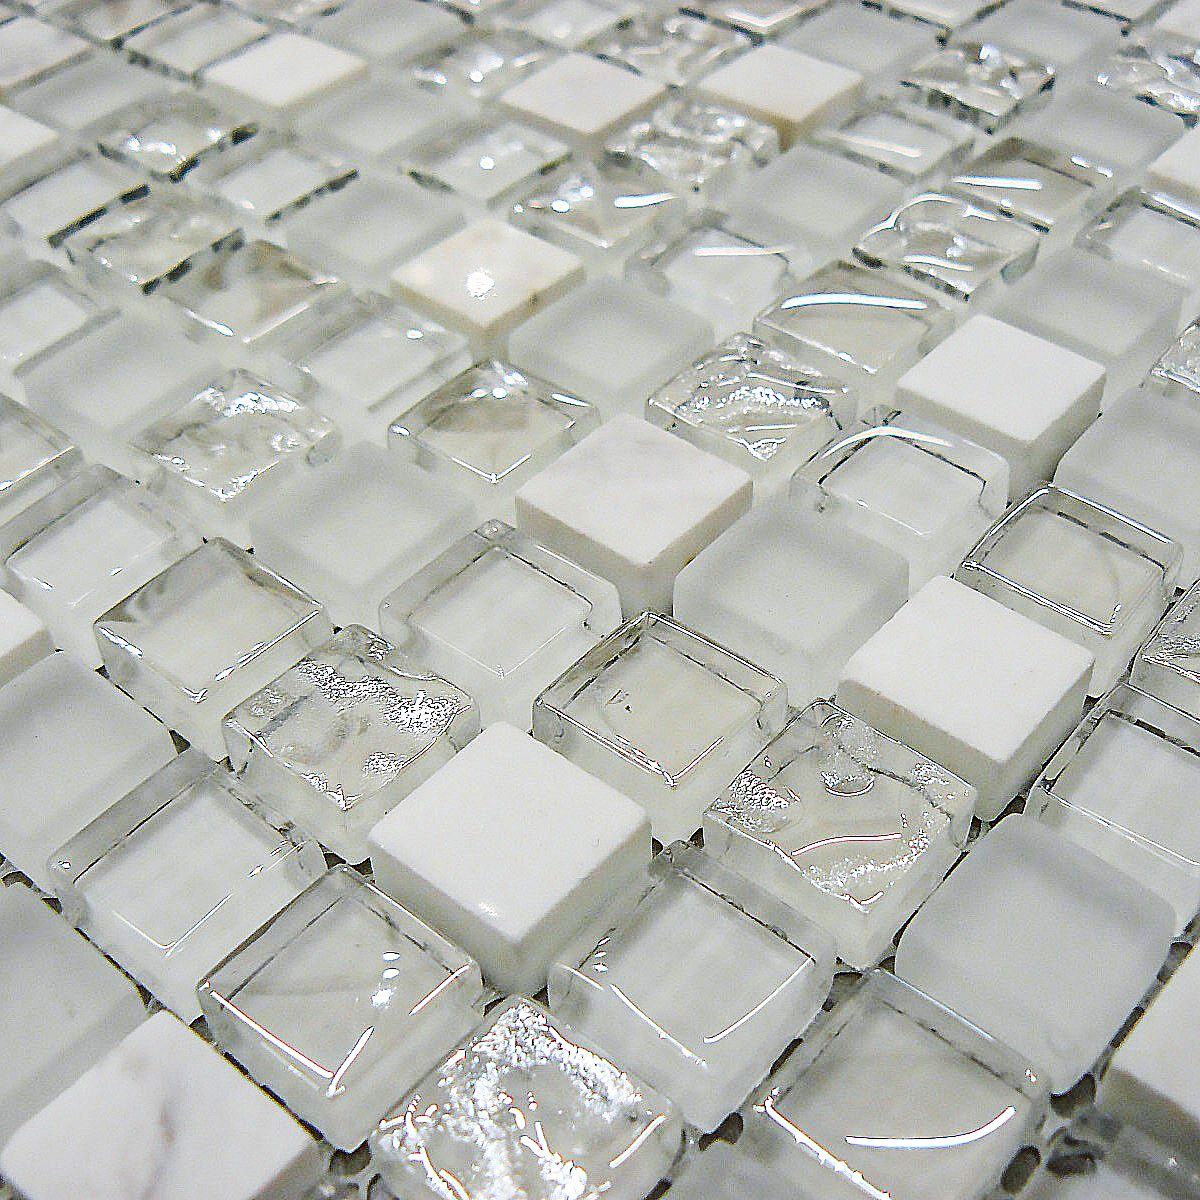 White Stone Glass Mosaic Tiles In 2020 Glass Mosaic Tiles Mosaic Glass Mosaic Tiles